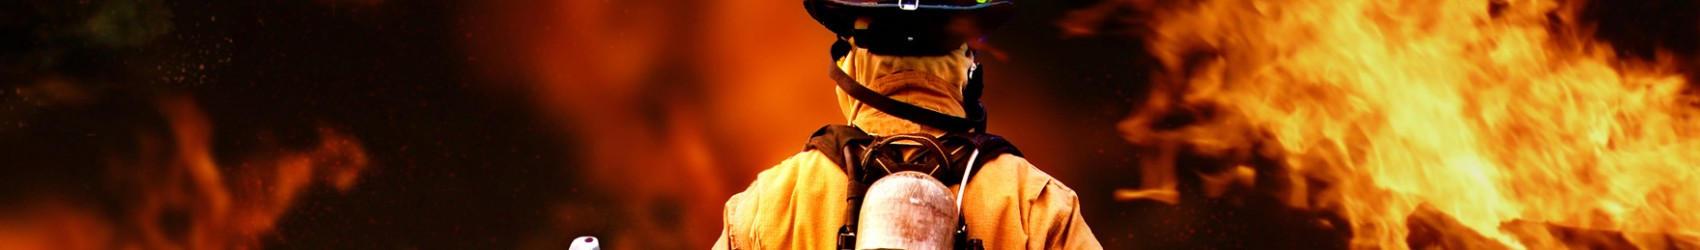 Fire Fighter walking into a burning house